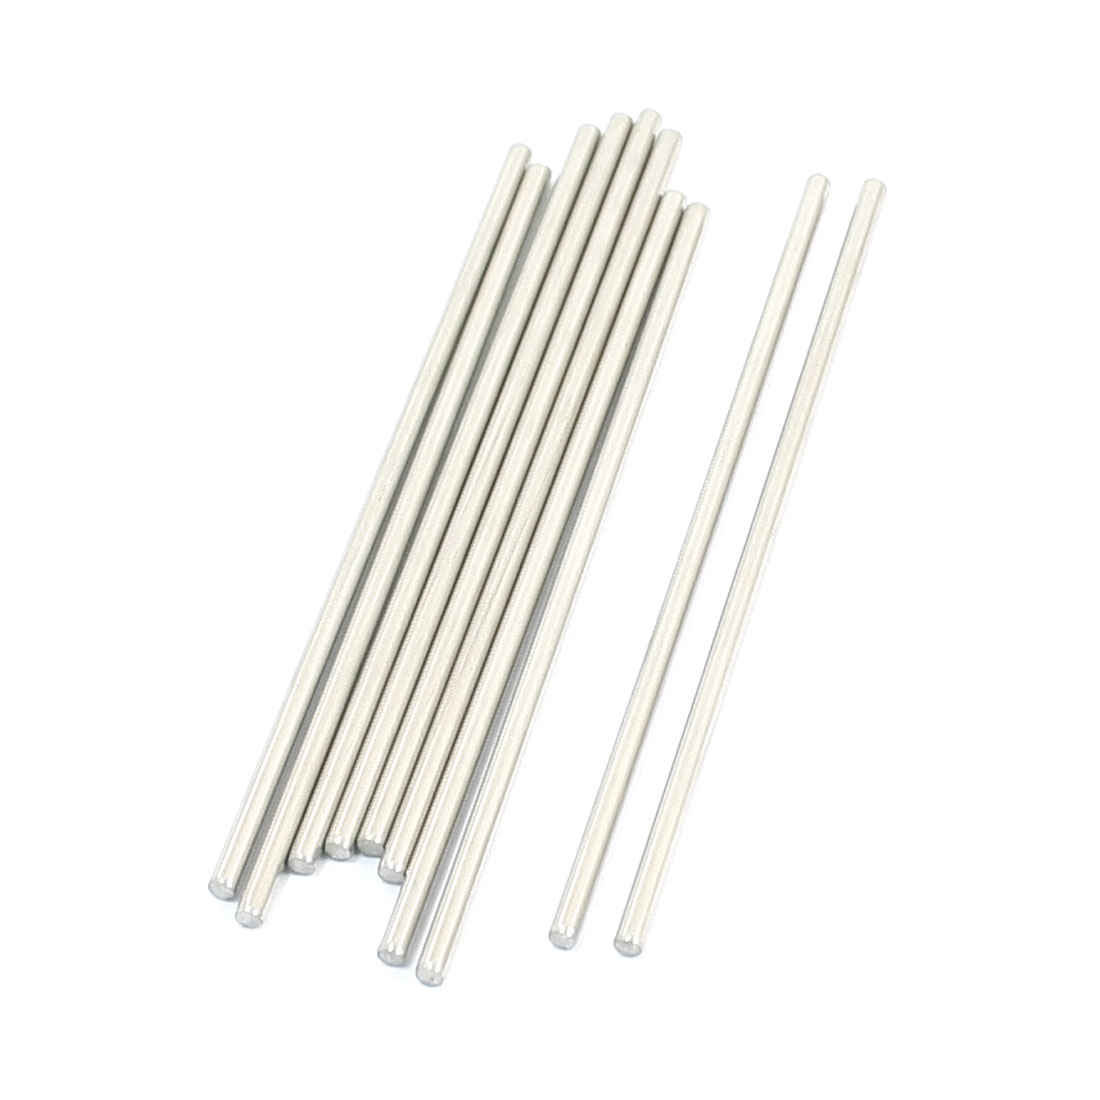 10pcs Stainless Steel Machinery Parts Component Round Bar 70x2mm